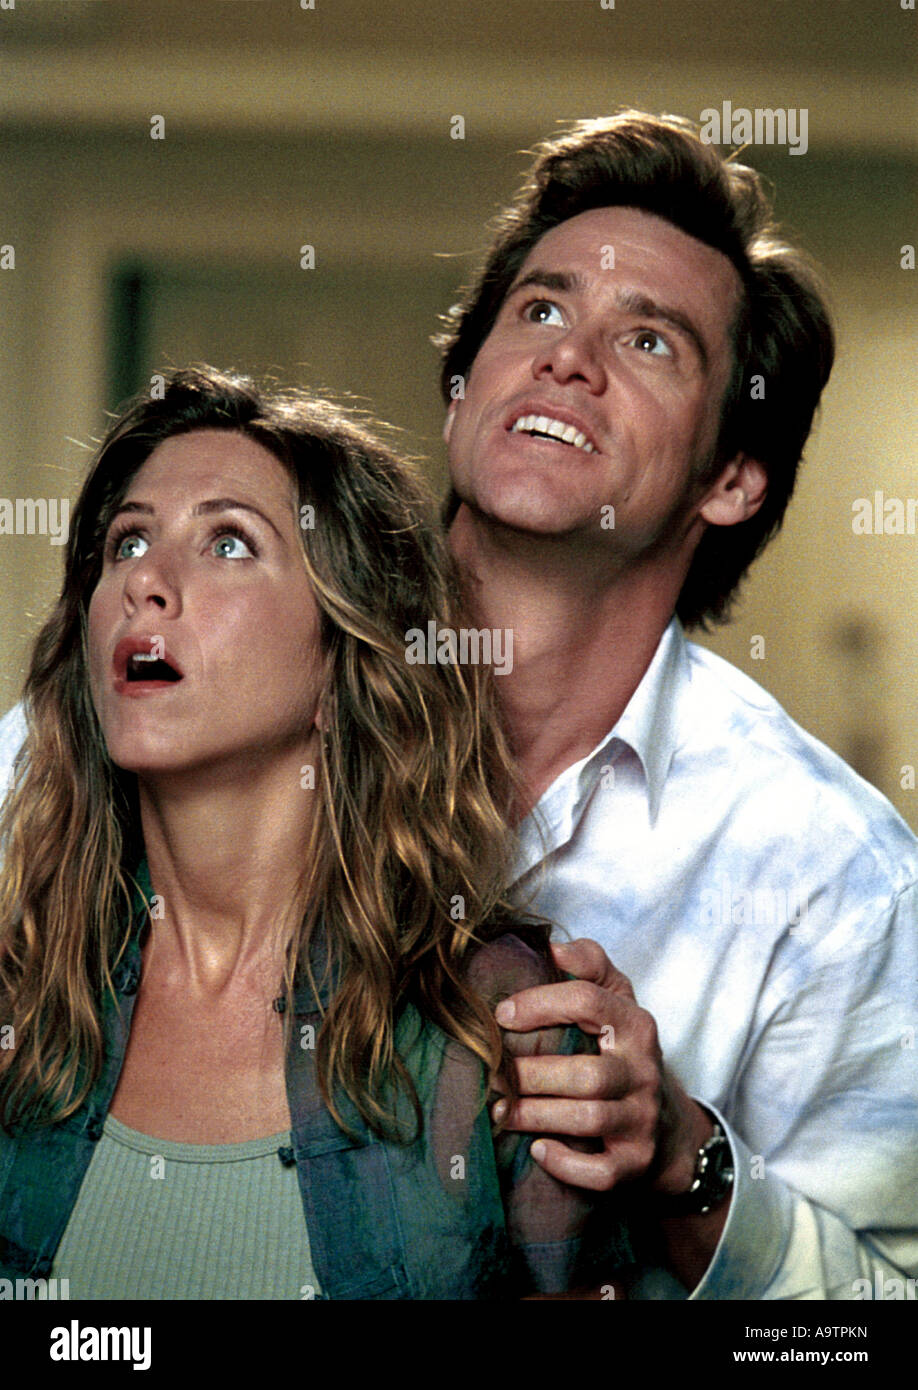 BRUCE ALMIGHTY - 2003 Universal film with Jennifer Aniston and Jim Carrey - Stock Image